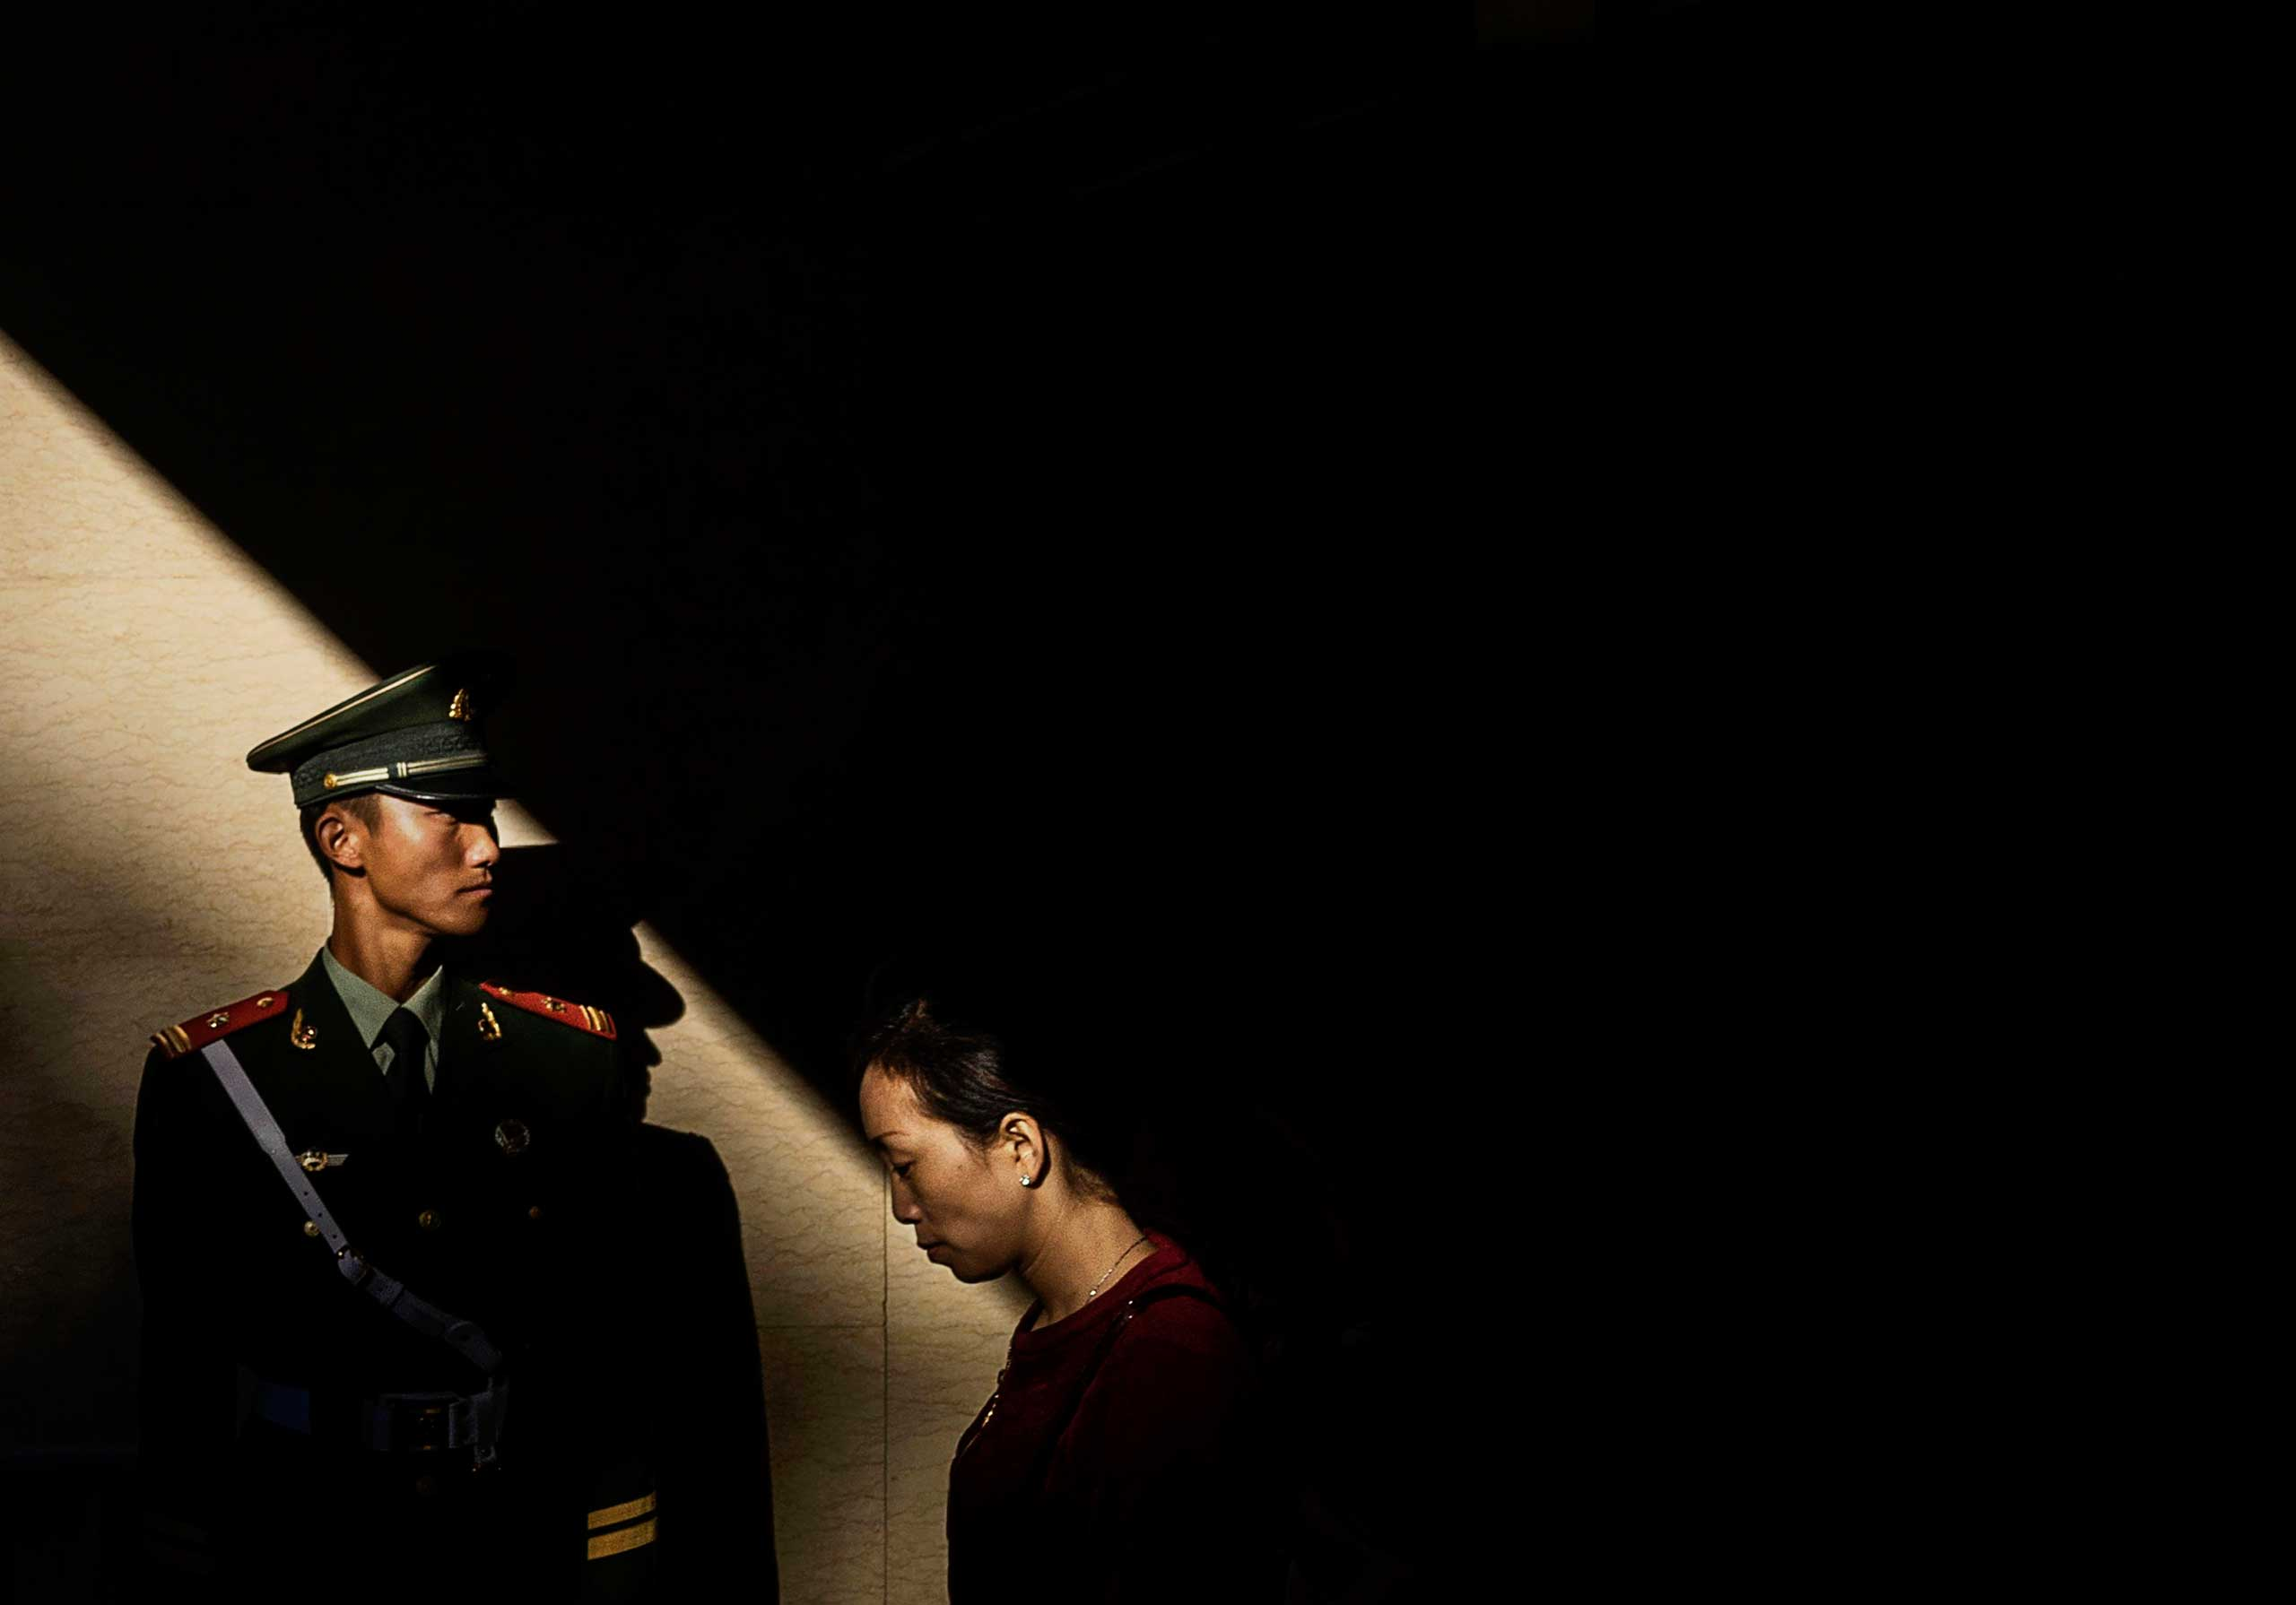 A paramilitary police officer guards in an underground tunnel after securing the official flag raising ceremony at Tiananmen Square to mark the 66th National Day in Beijing,  on Oct. 1, 2015.